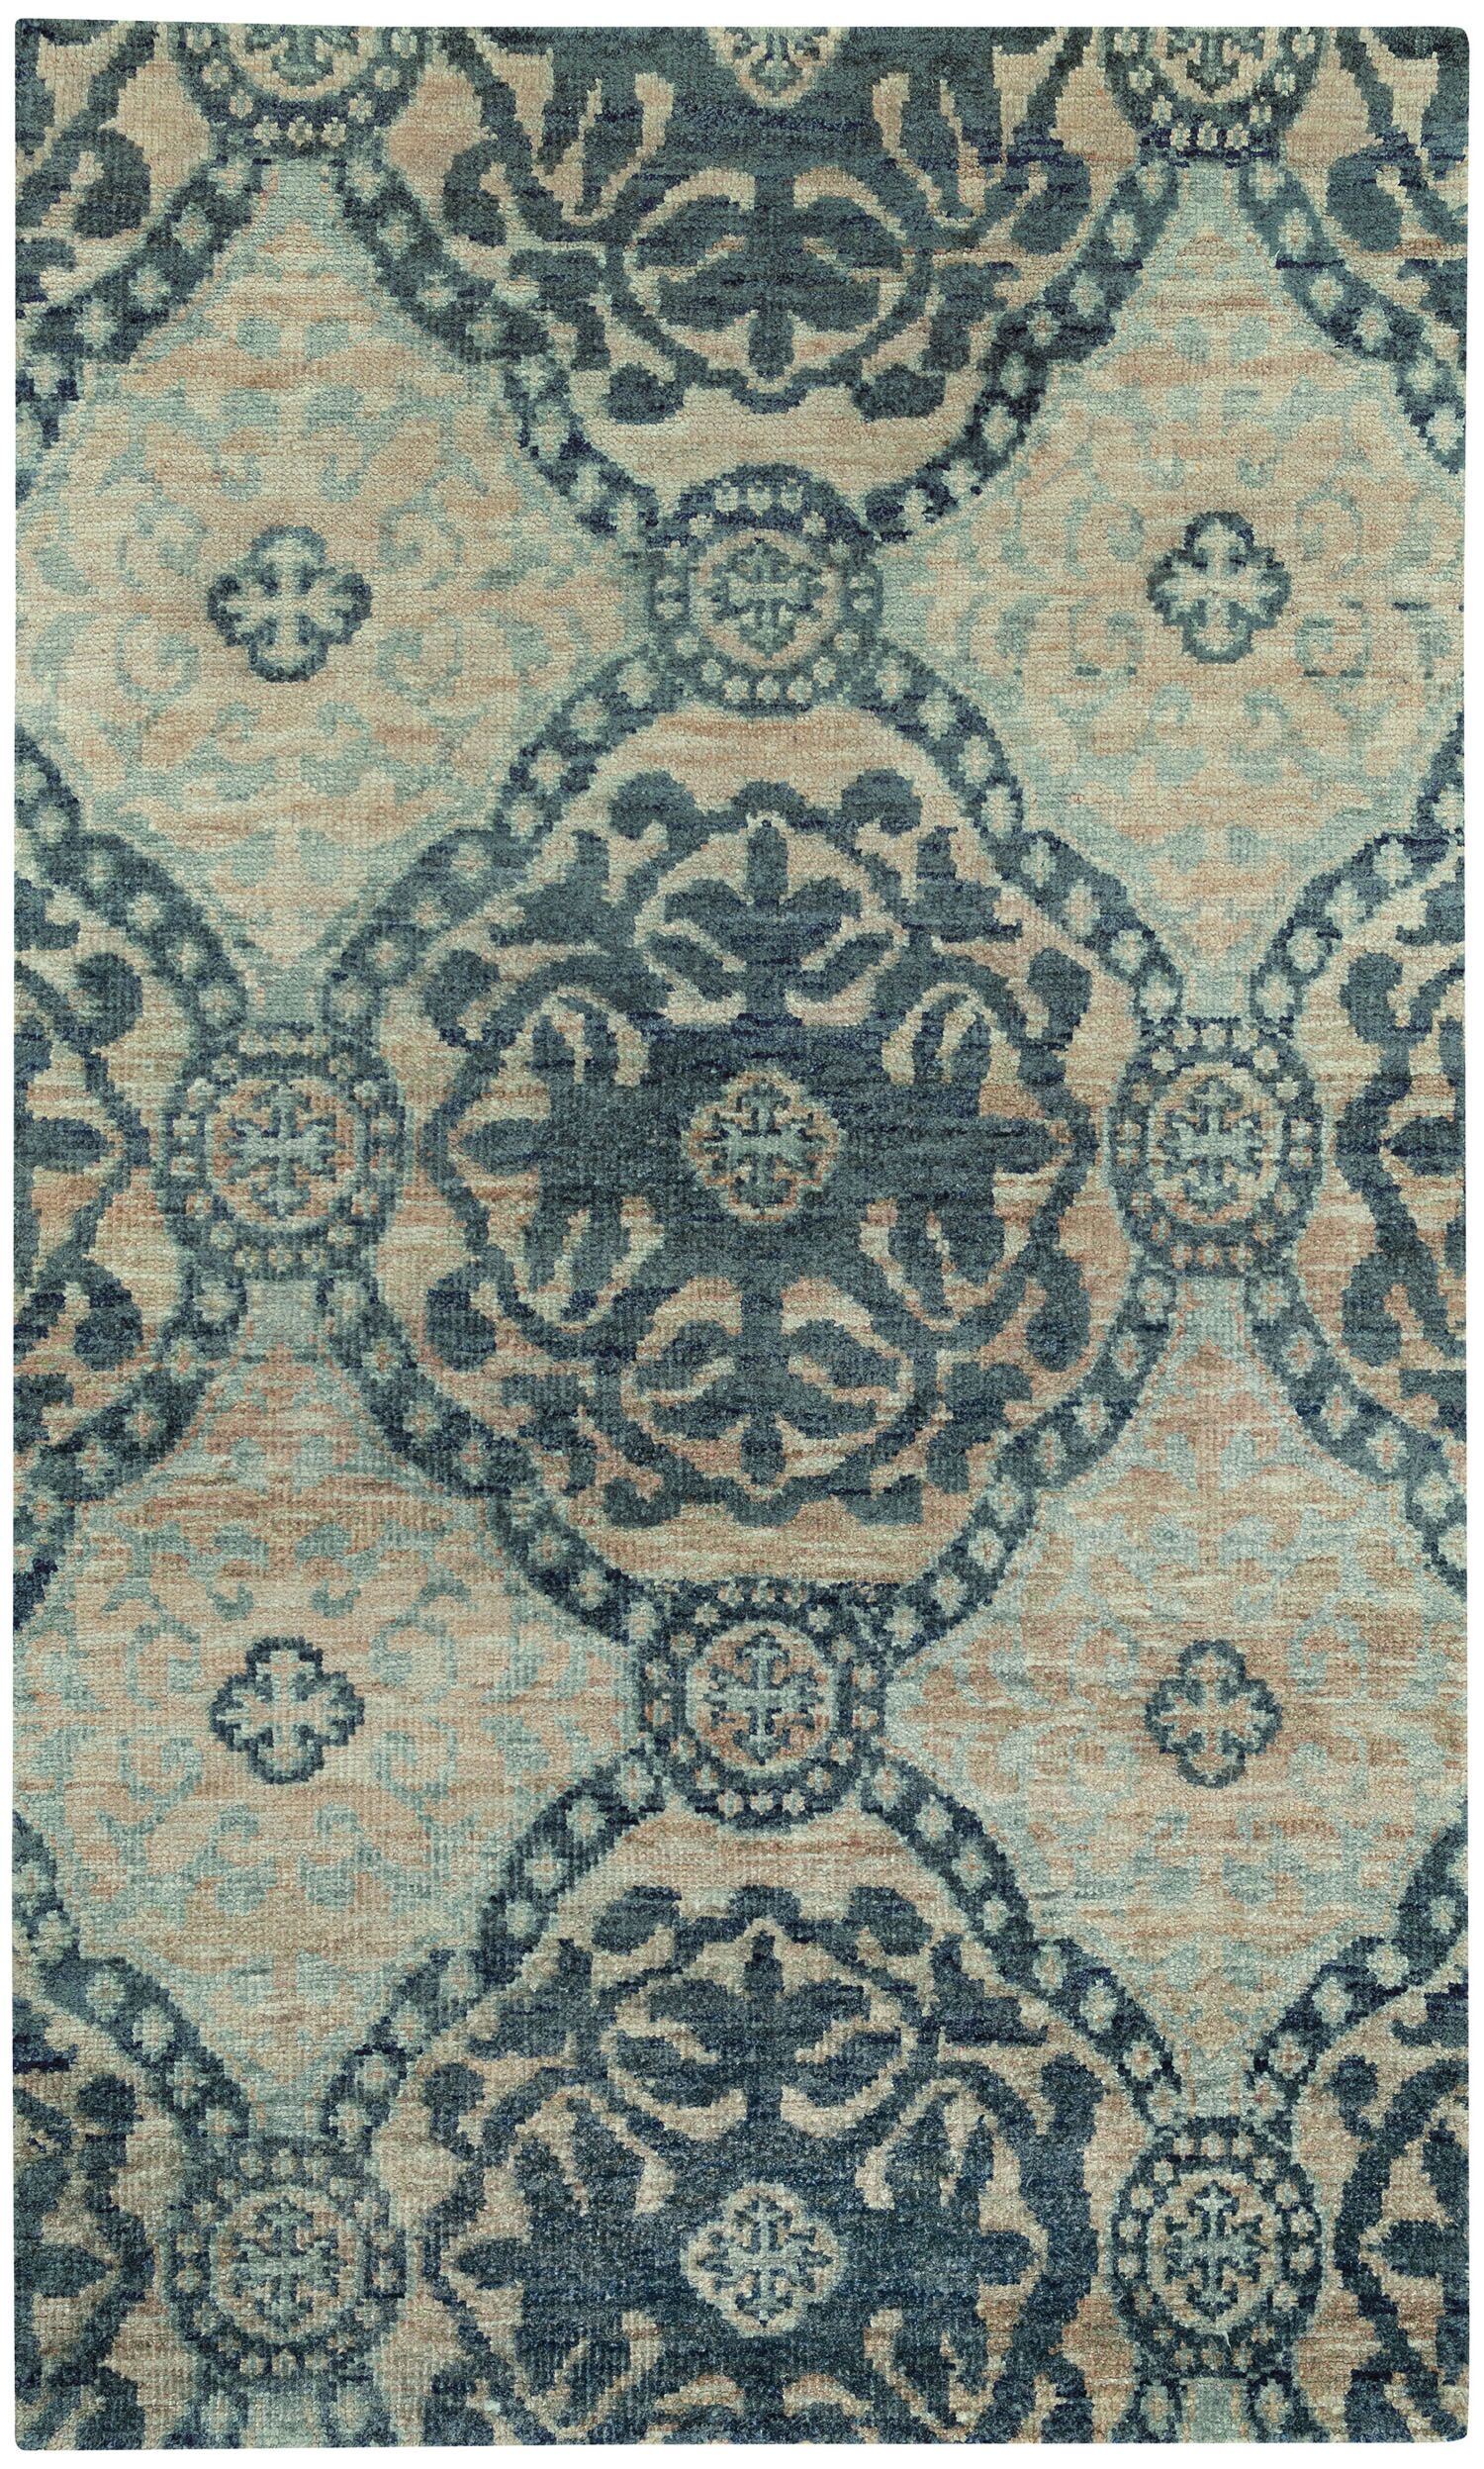 Round About Ring Leader Hand Knotted Blueberry Area Rug Rug Size: 5' x 8'